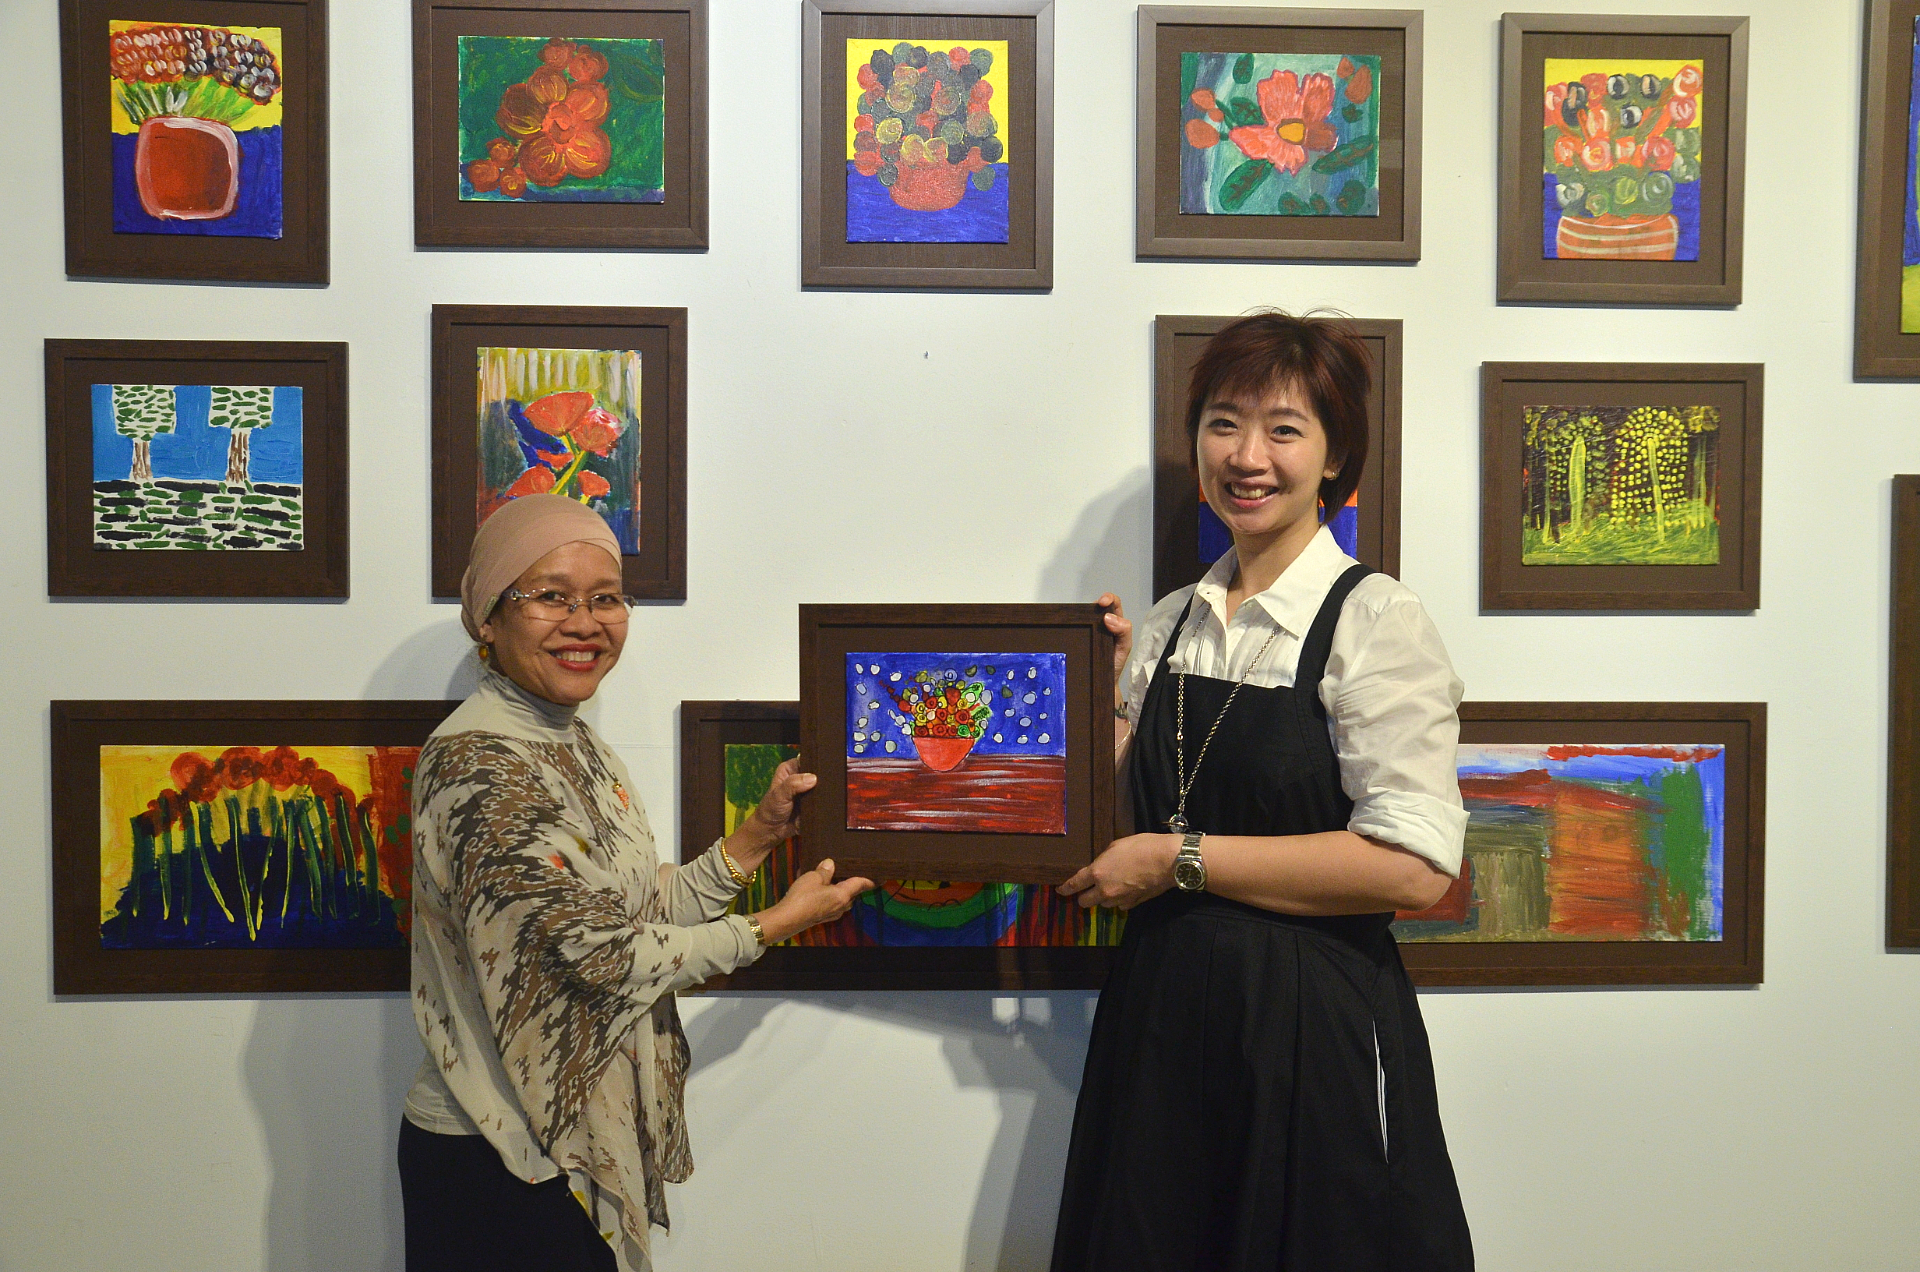 Juairiah Johari, Founder of GOLD and Dr Tong Gin Chee, Co-Founder of ZHAN Art Space hanging up the final artpiece